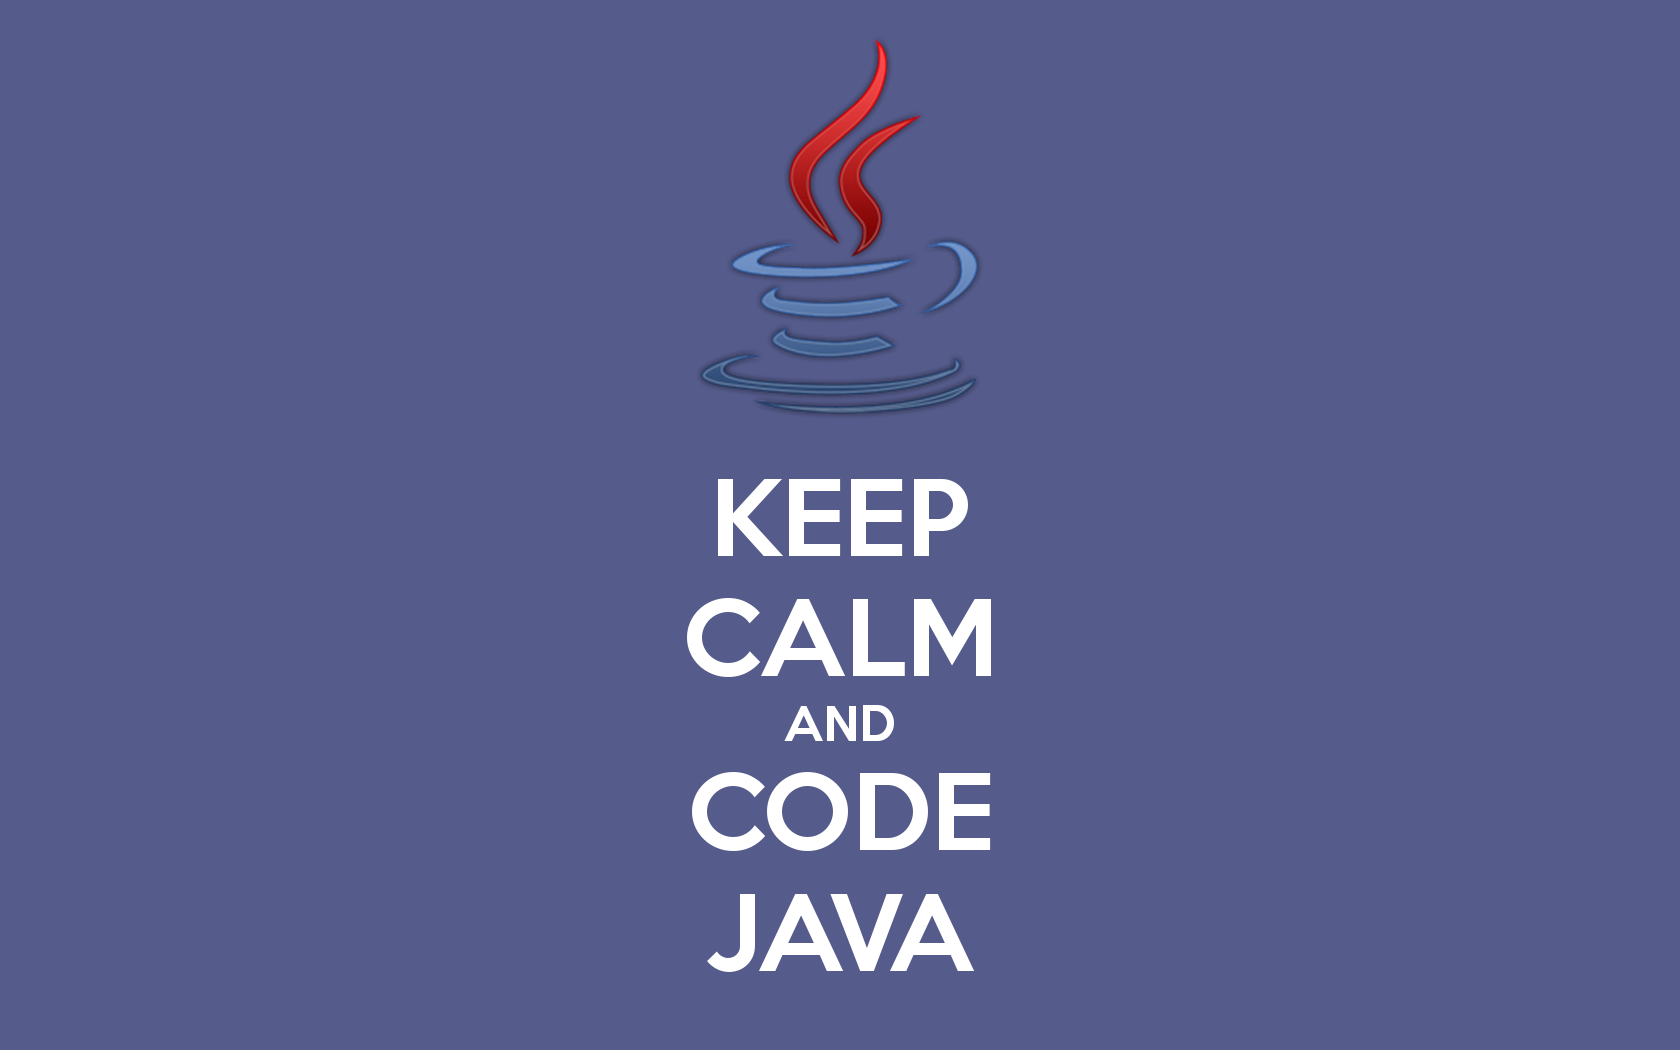 Java Coding Wallpaper Widescreen wallpaper 1680x1050